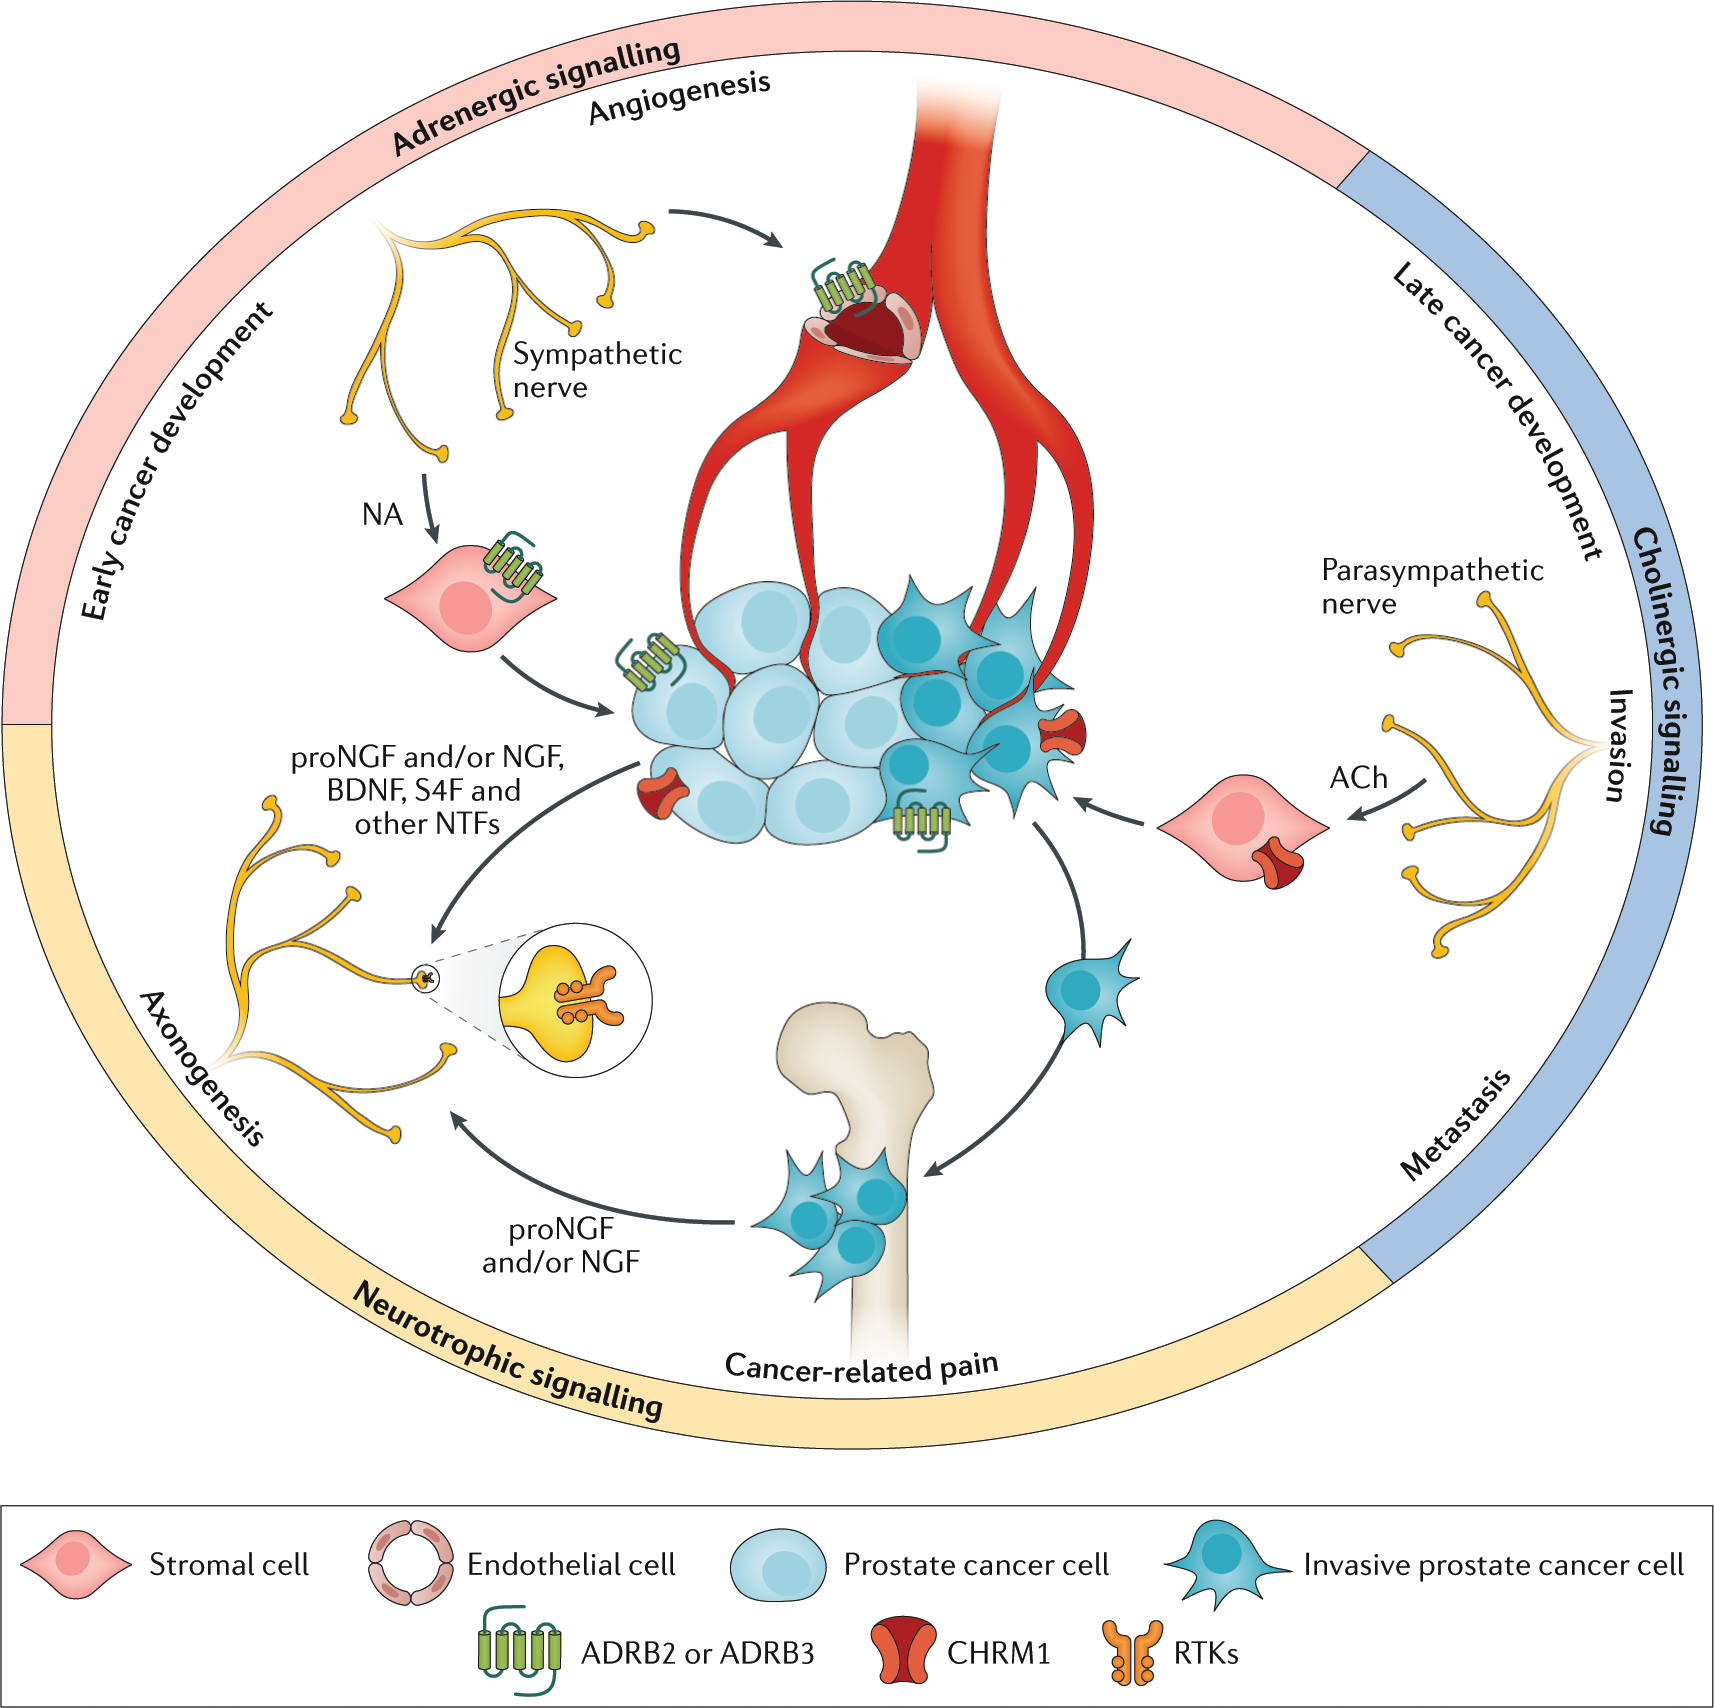 Tumour innervation and neurosignalling in prostate cancer